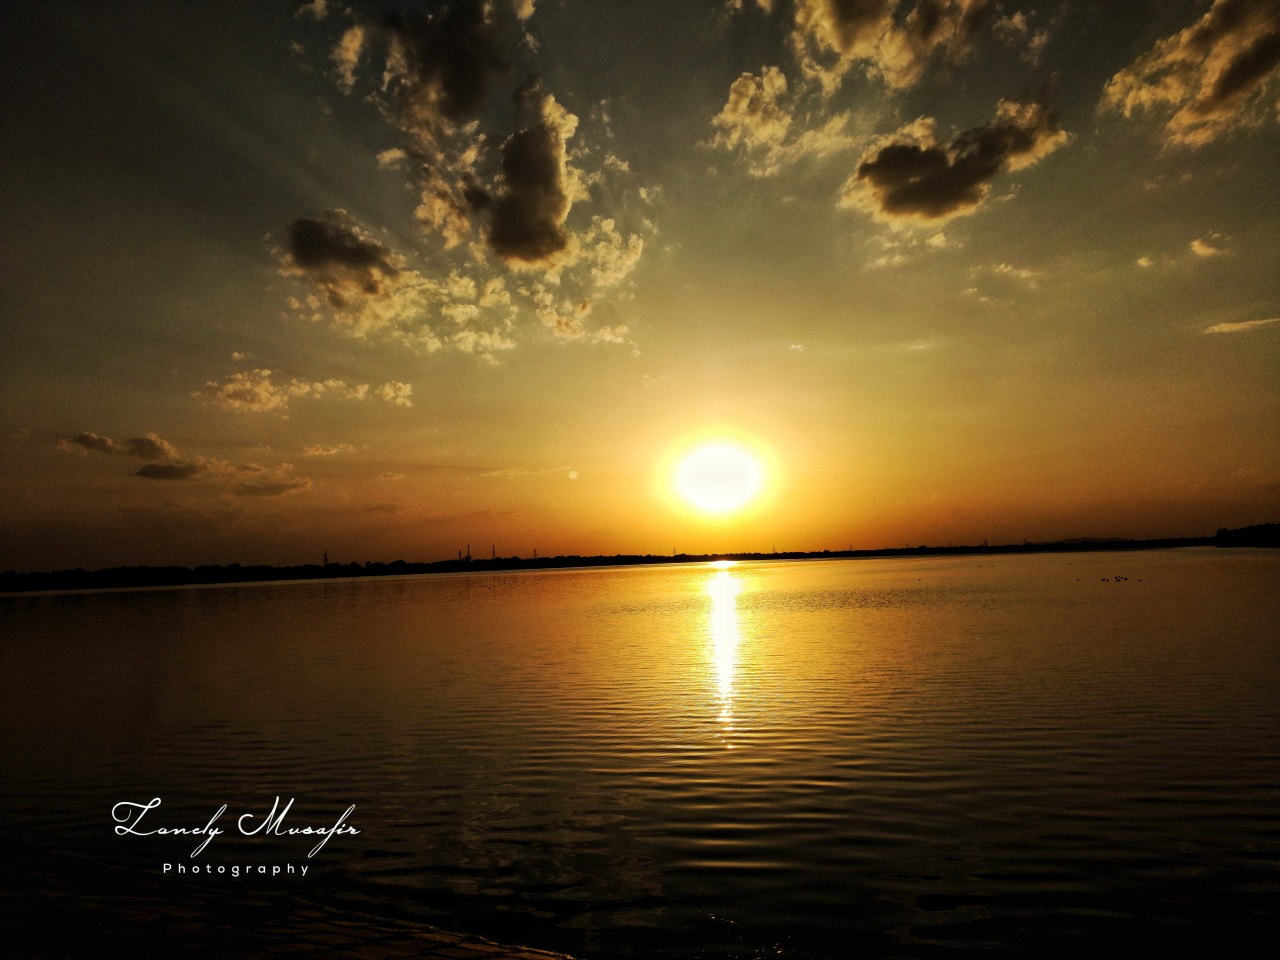 Sunset Photography- Lock Down Days (COVID-19 INDIA)